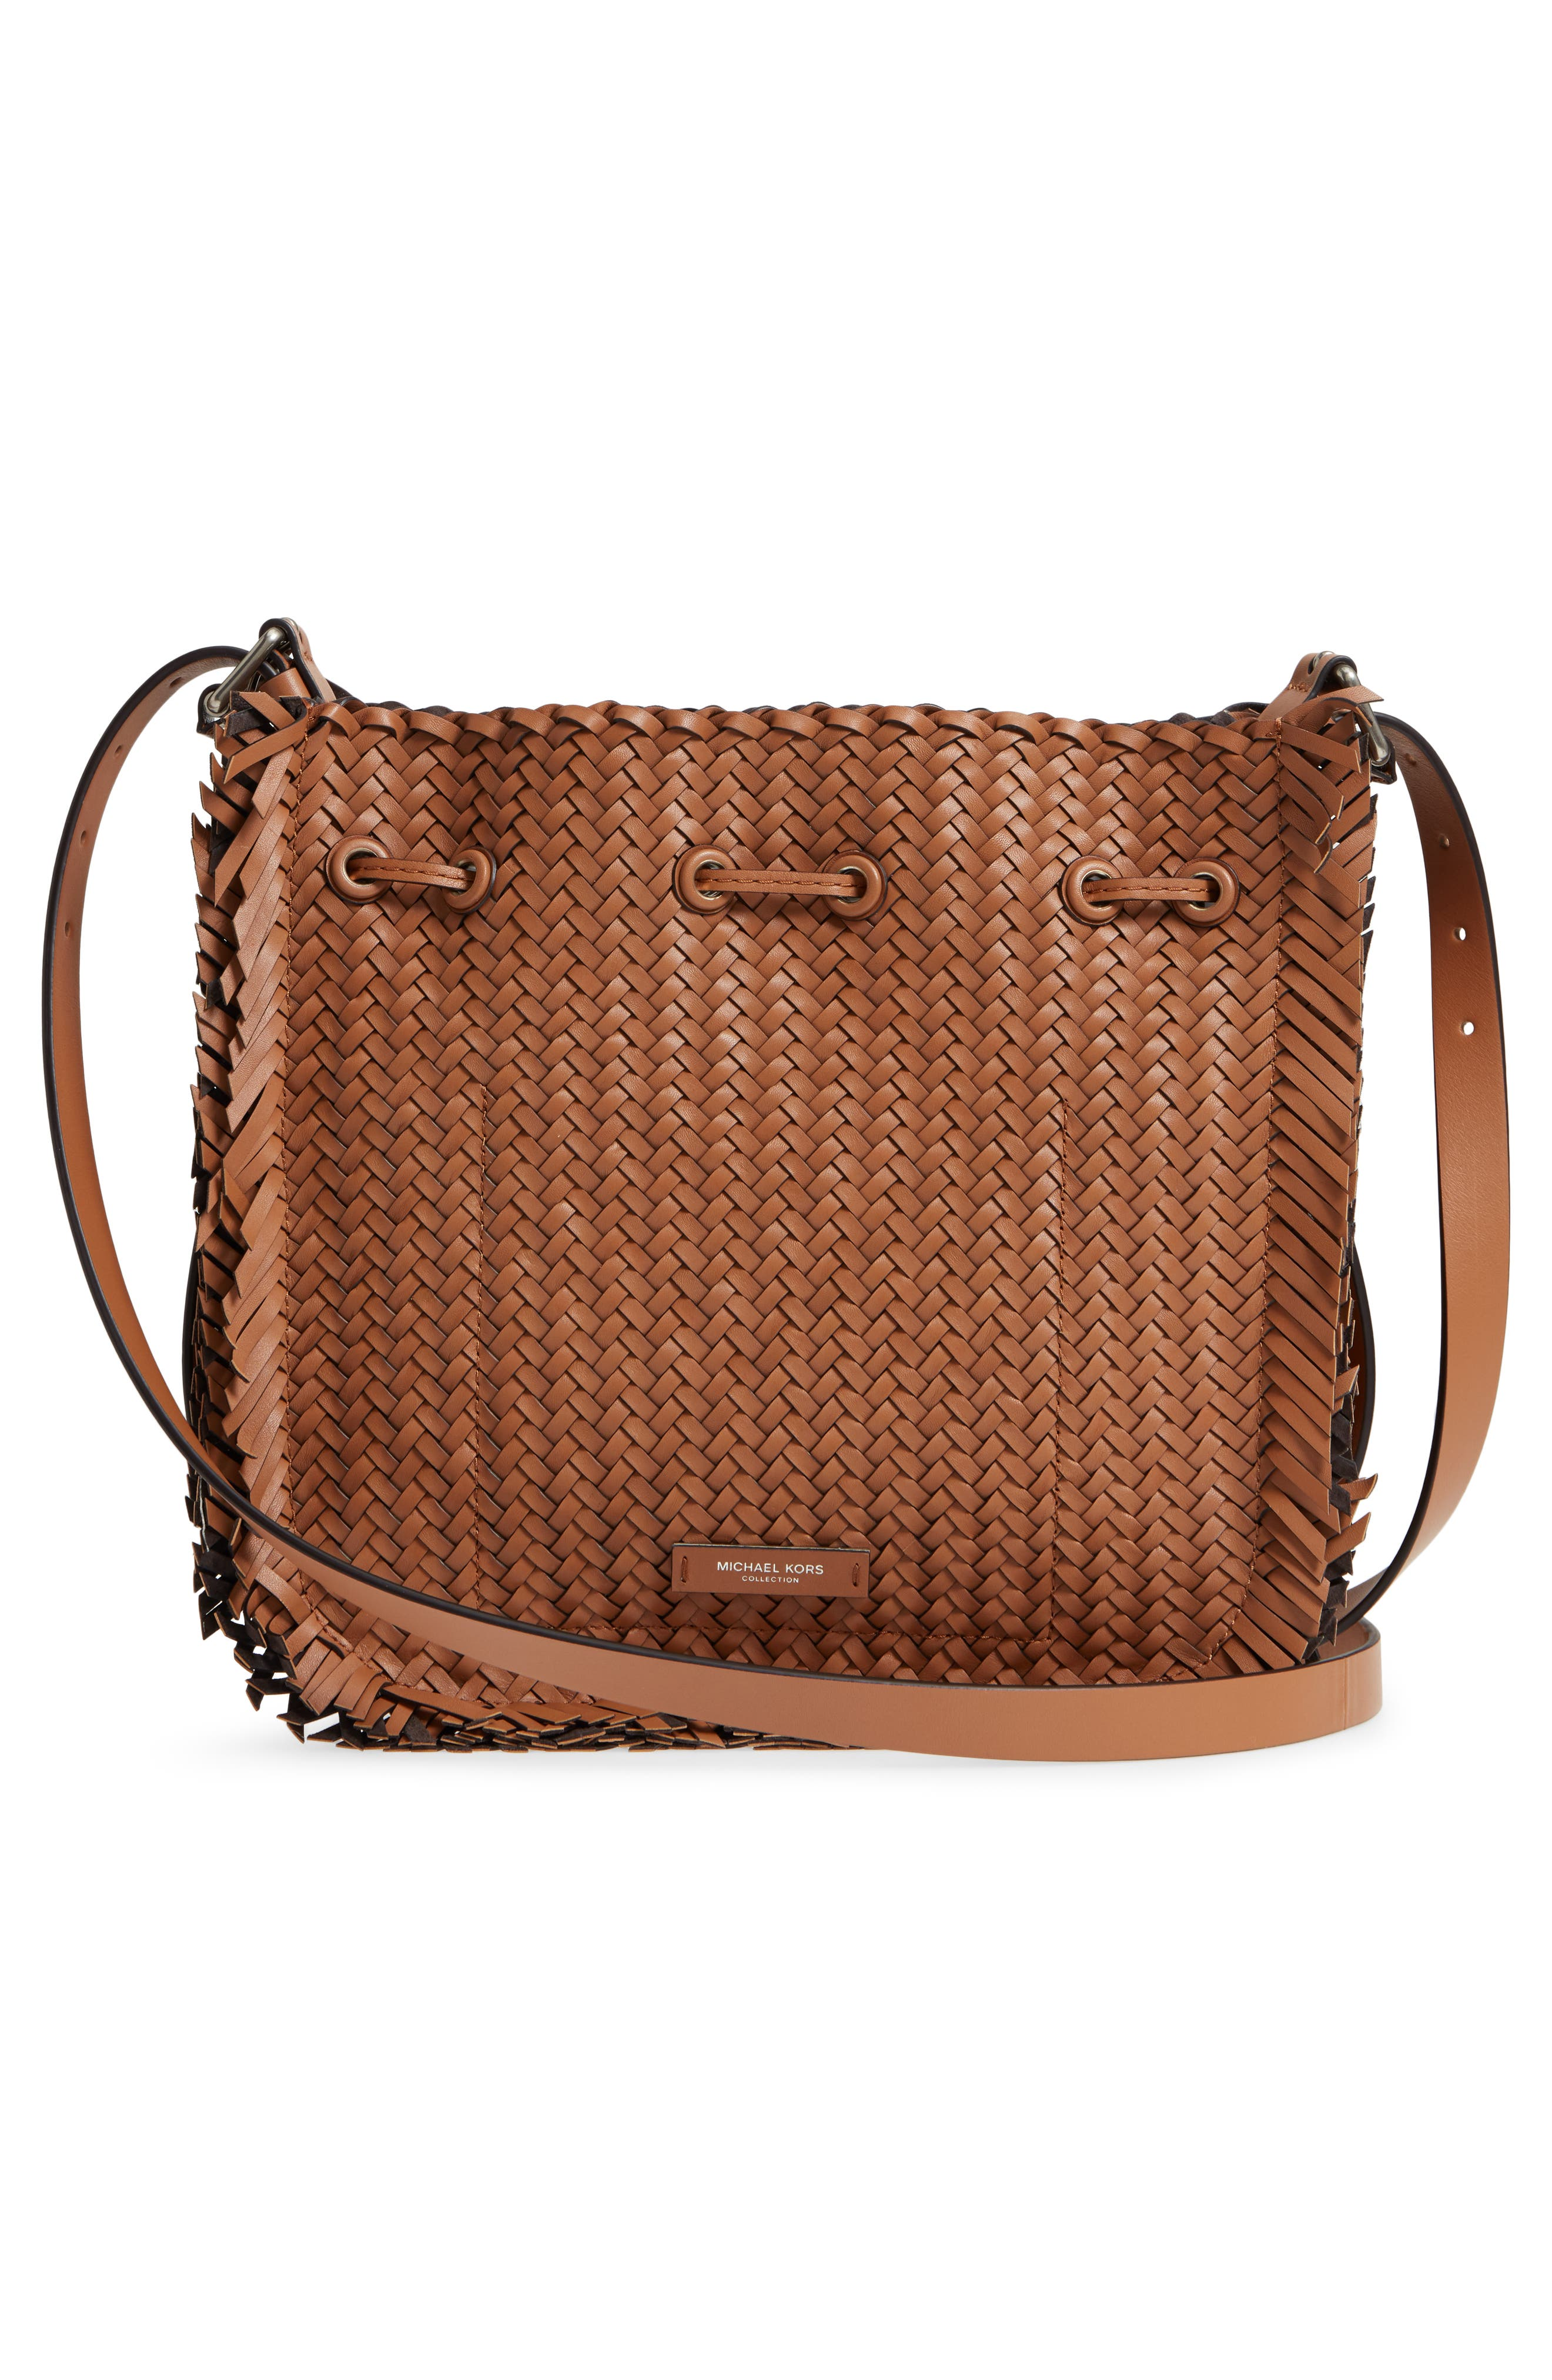 Maldives Woven Frayed Leather Crossbody Bag,                             Alternate thumbnail 3, color,                             Acorn